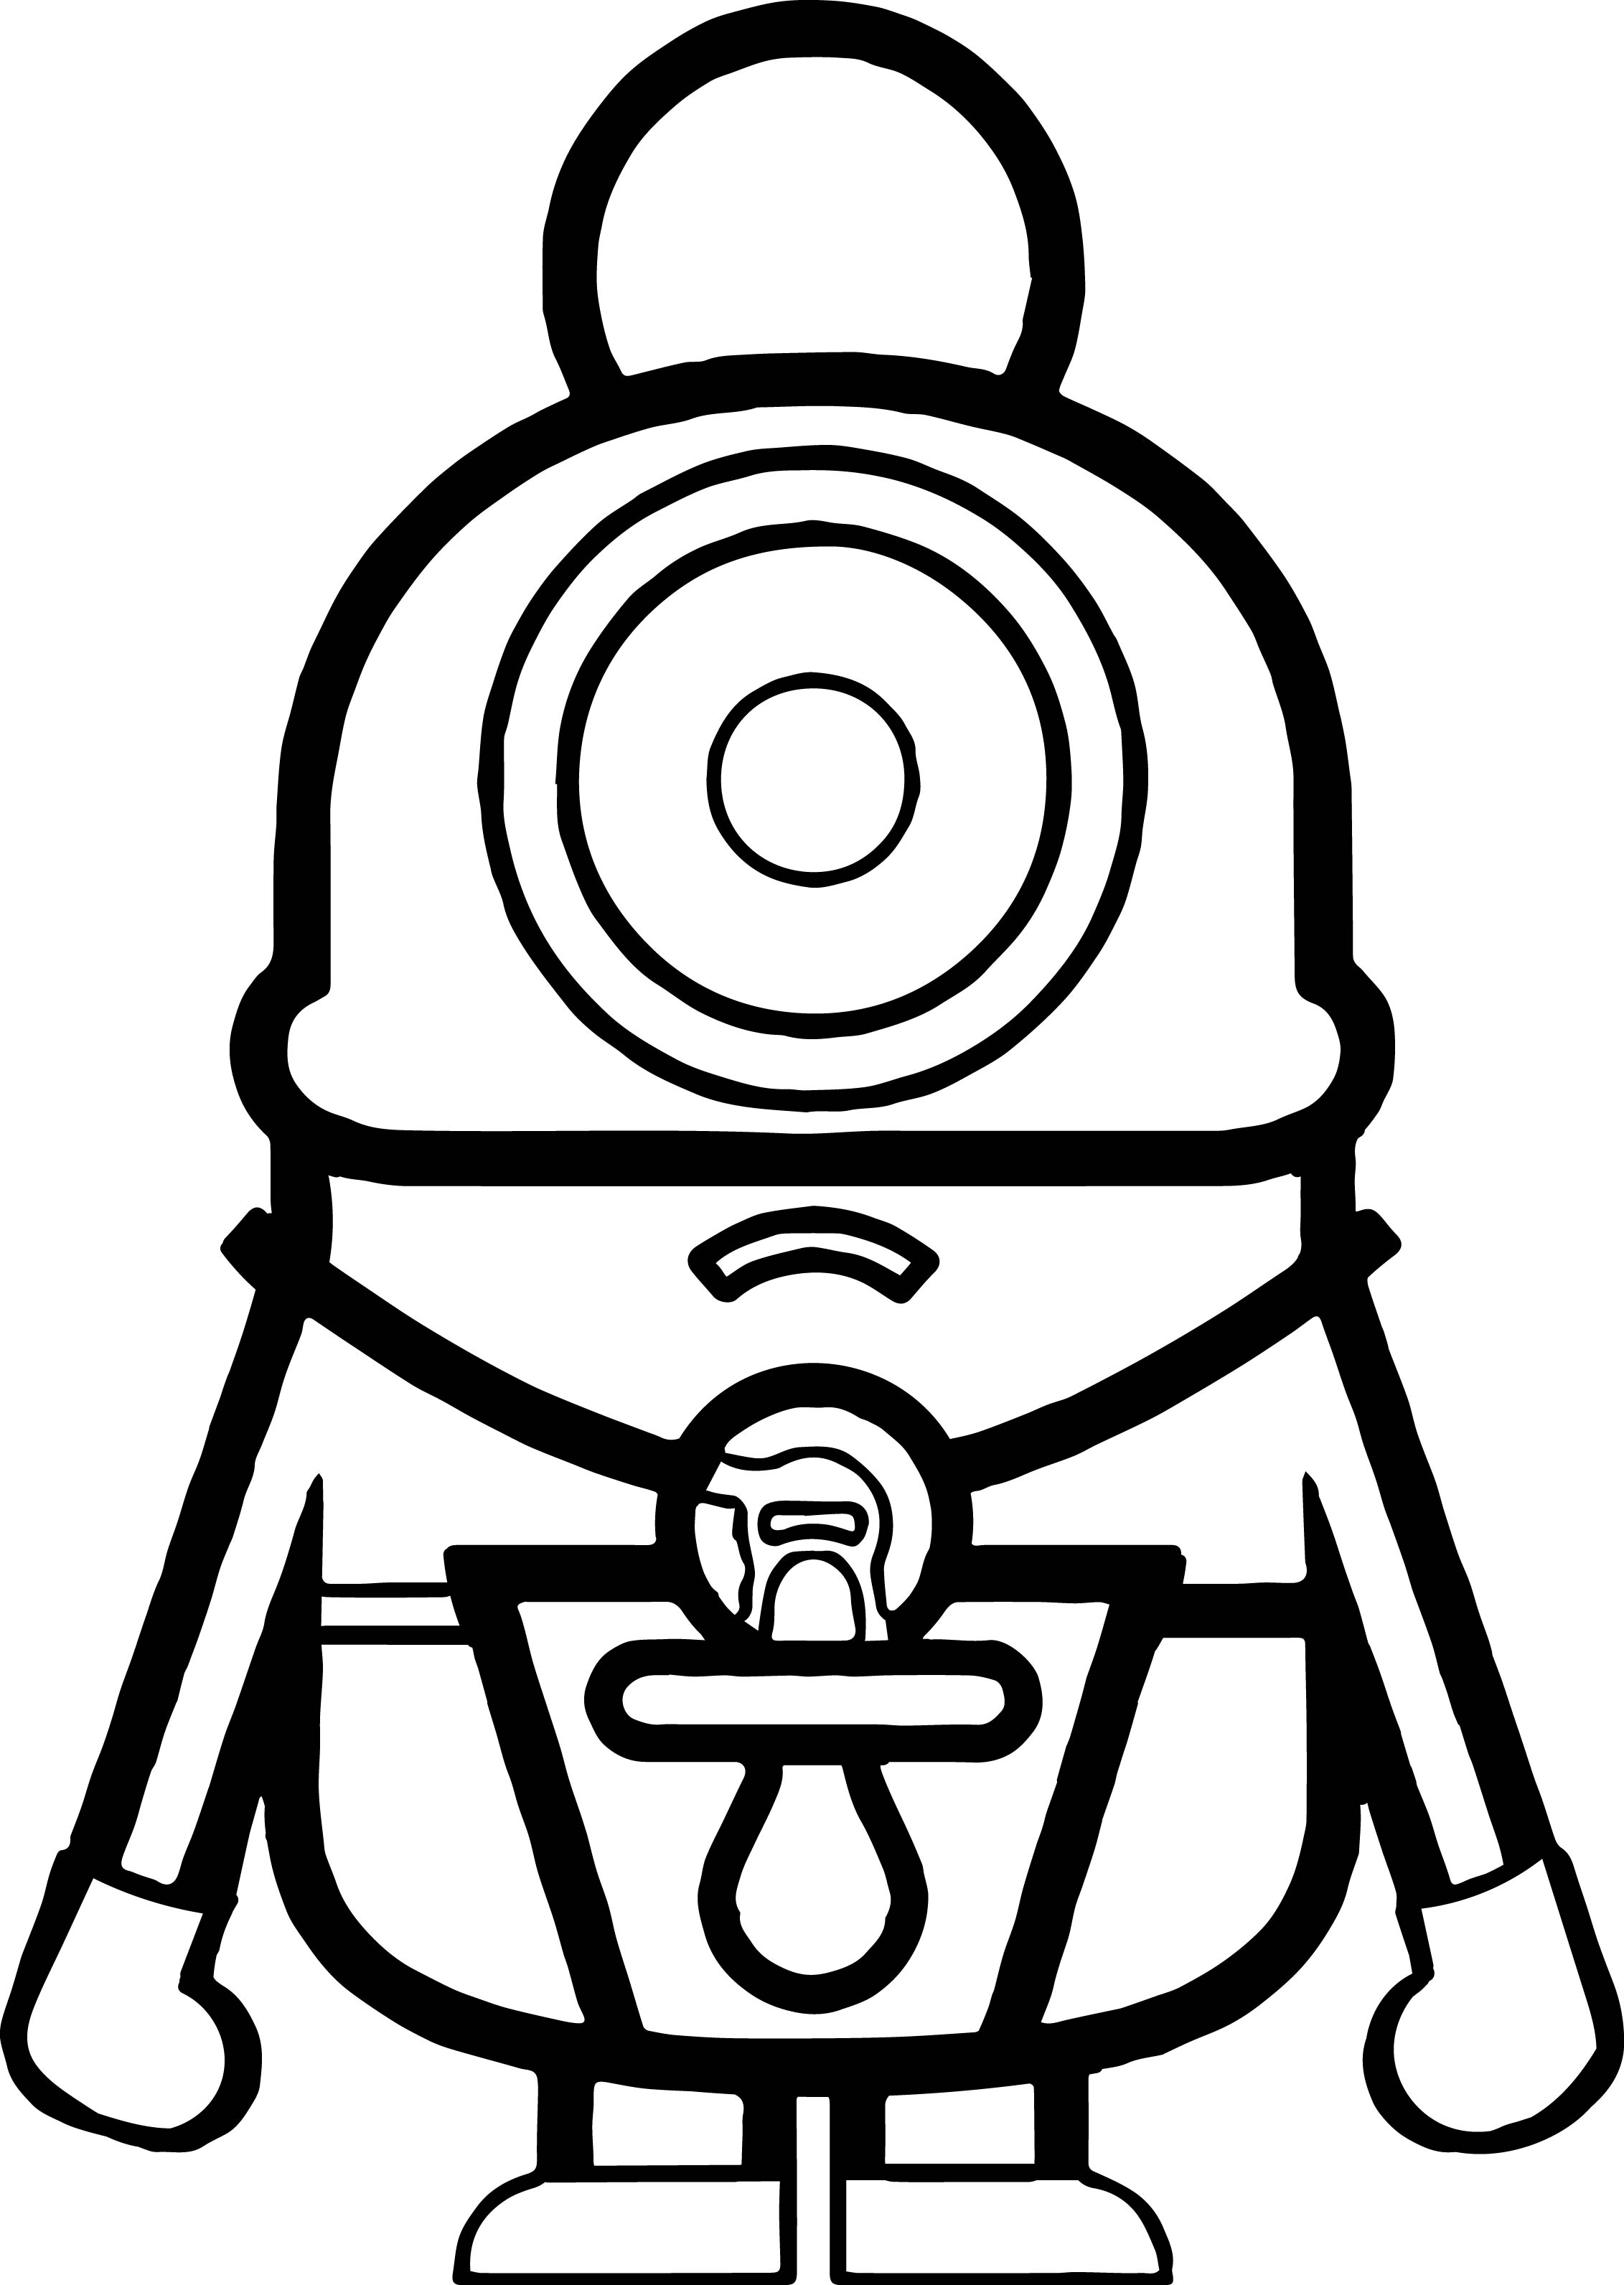 finest minions coloring printables download minion cute